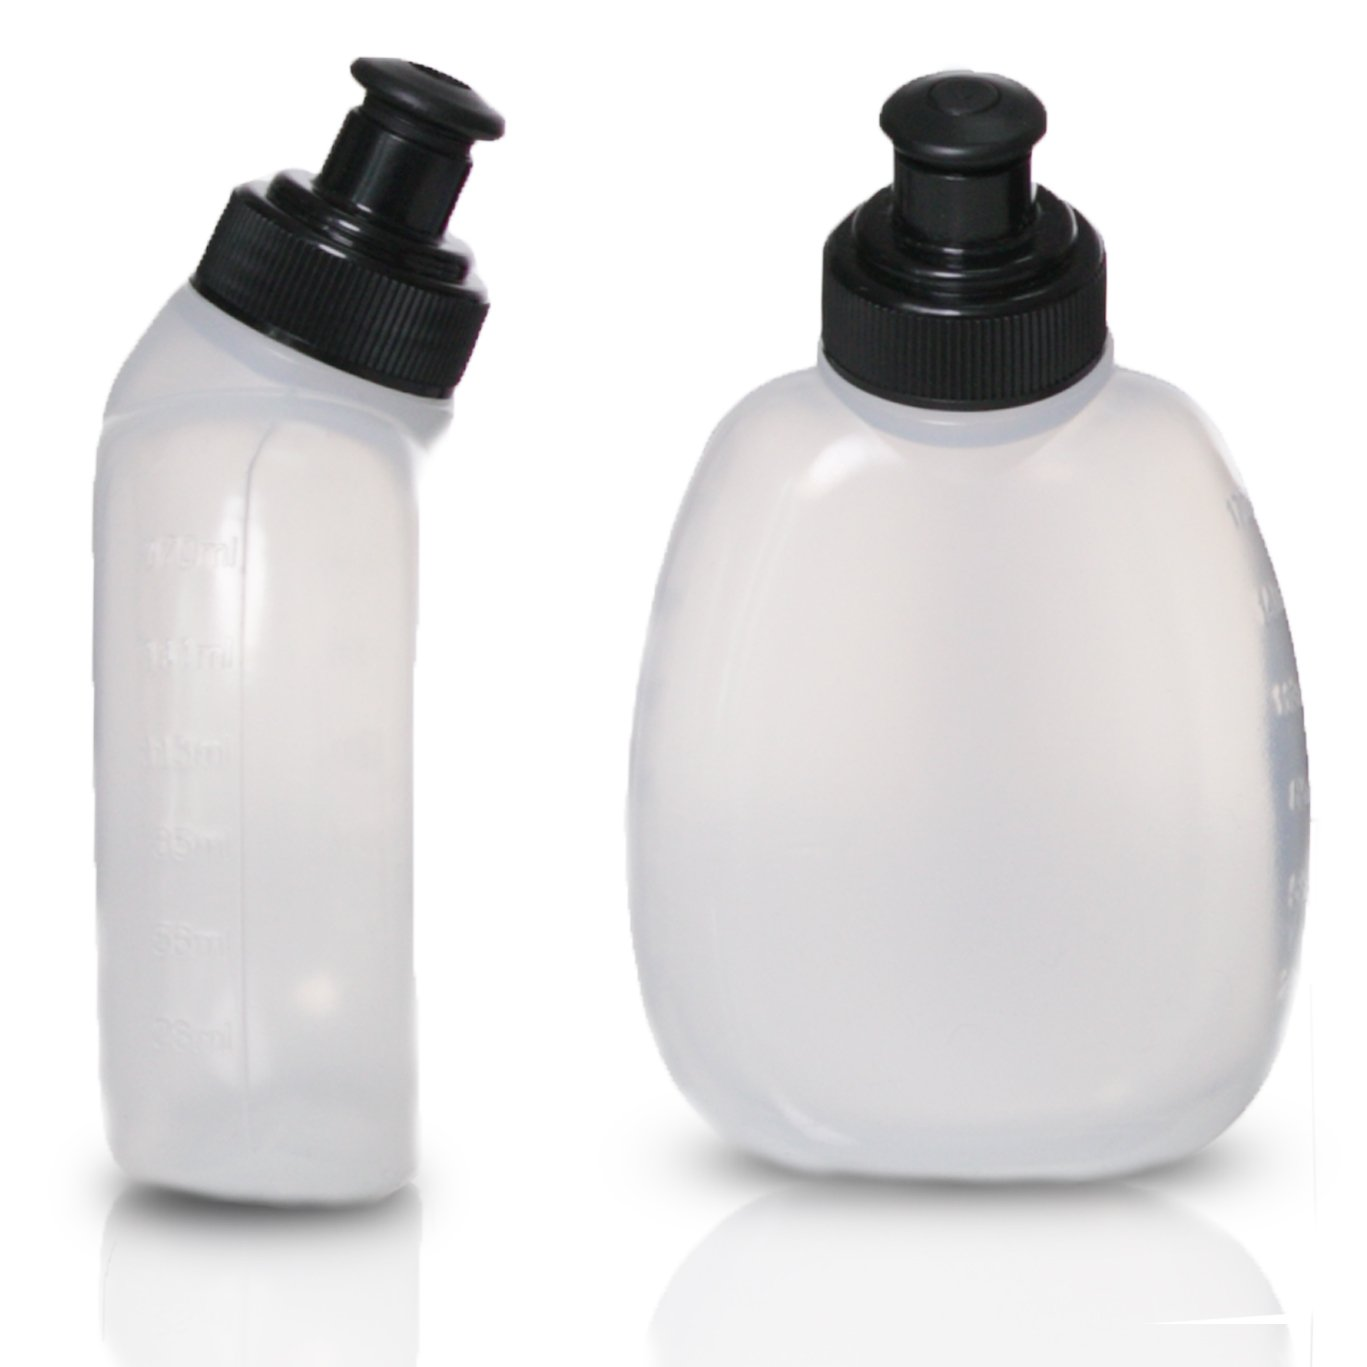 Runtasty 2X 10 oz BPA Free Water Bottles for The Running Hydration Belt w//Touch Screen Cover Full Compatibility with Most Running Fuel Belts and Fanny Packs on The Market!